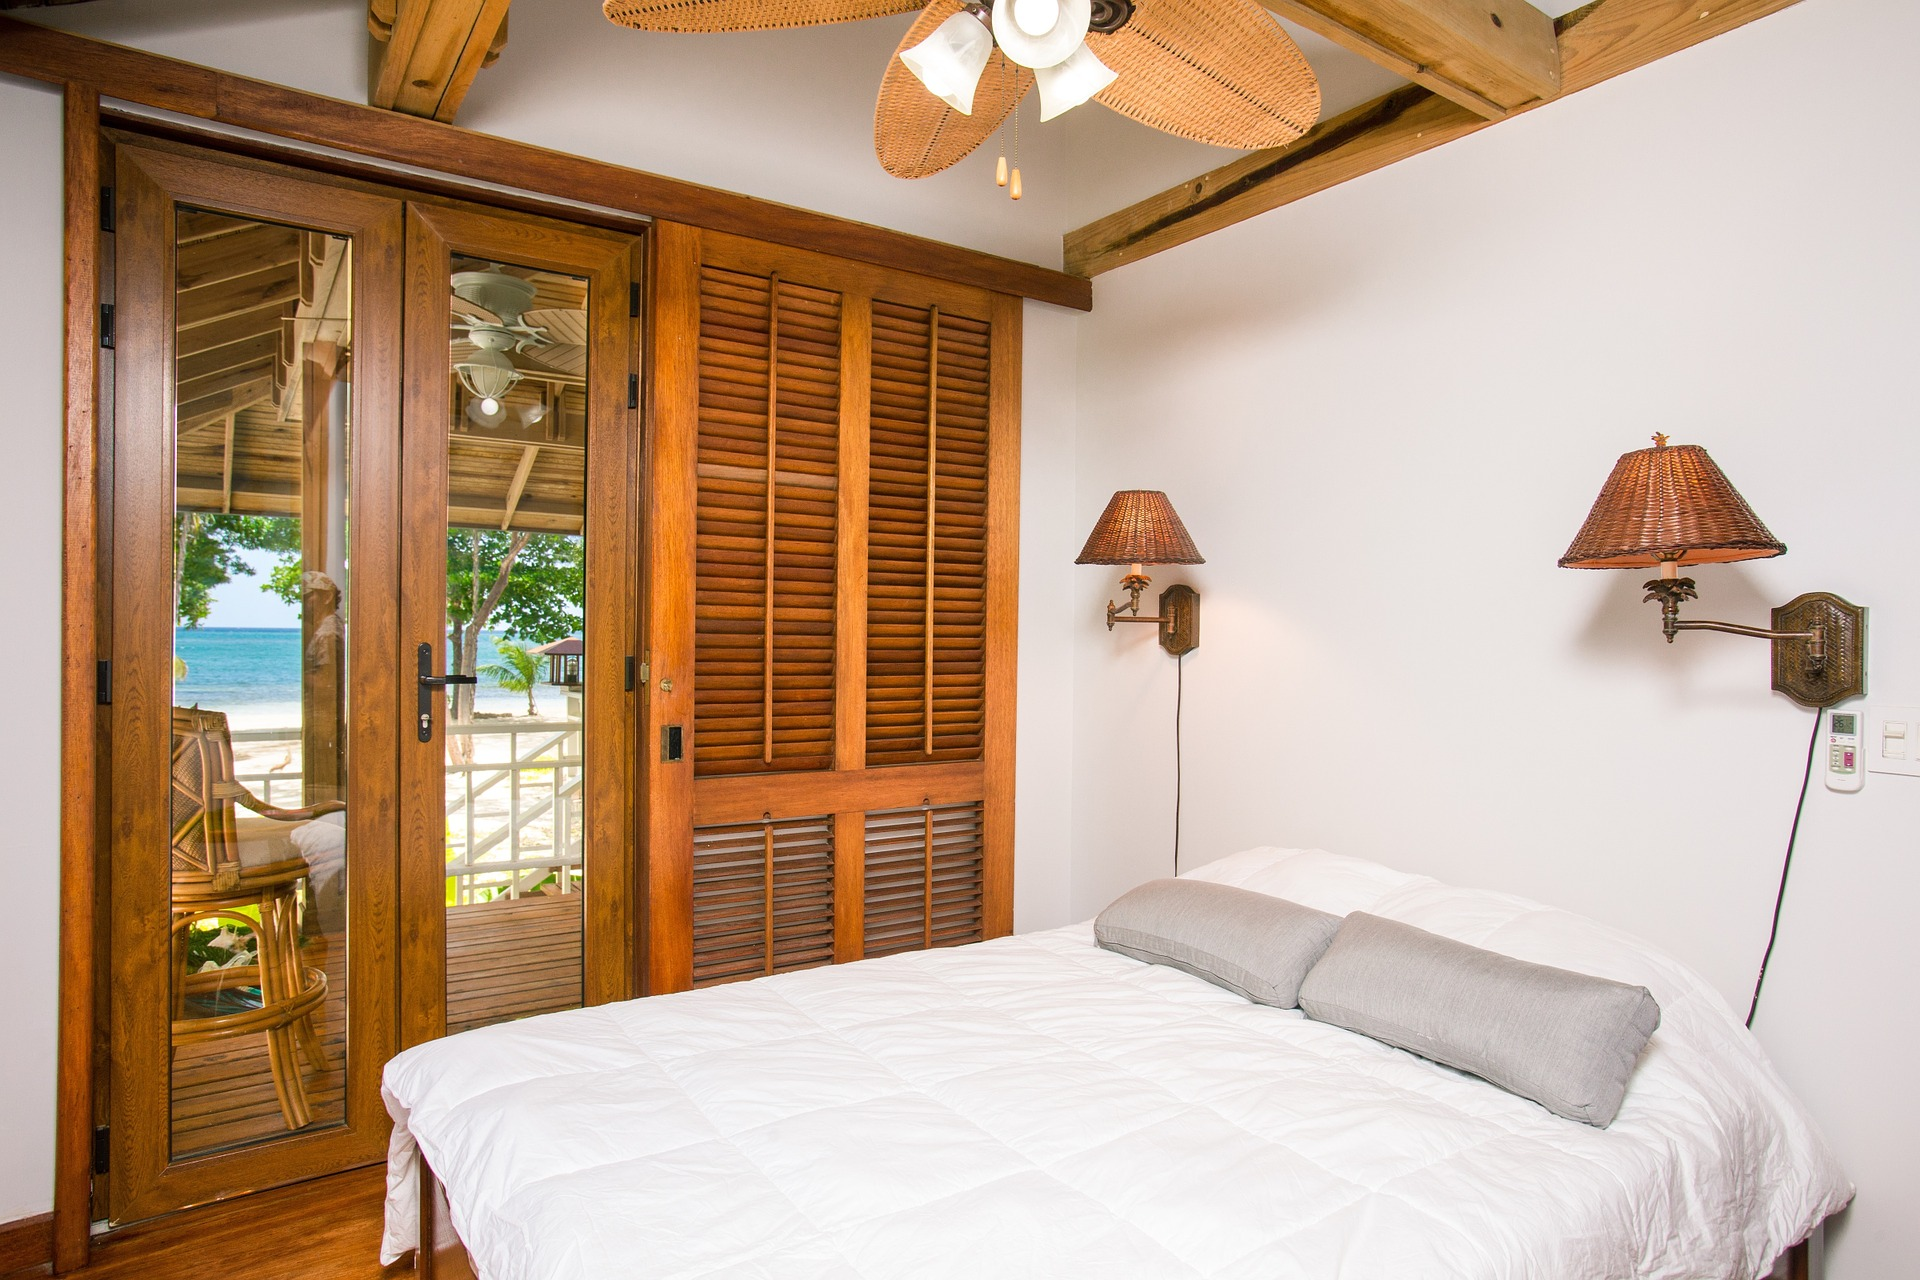 hotel vs airbnb vs hostel which one is right for you